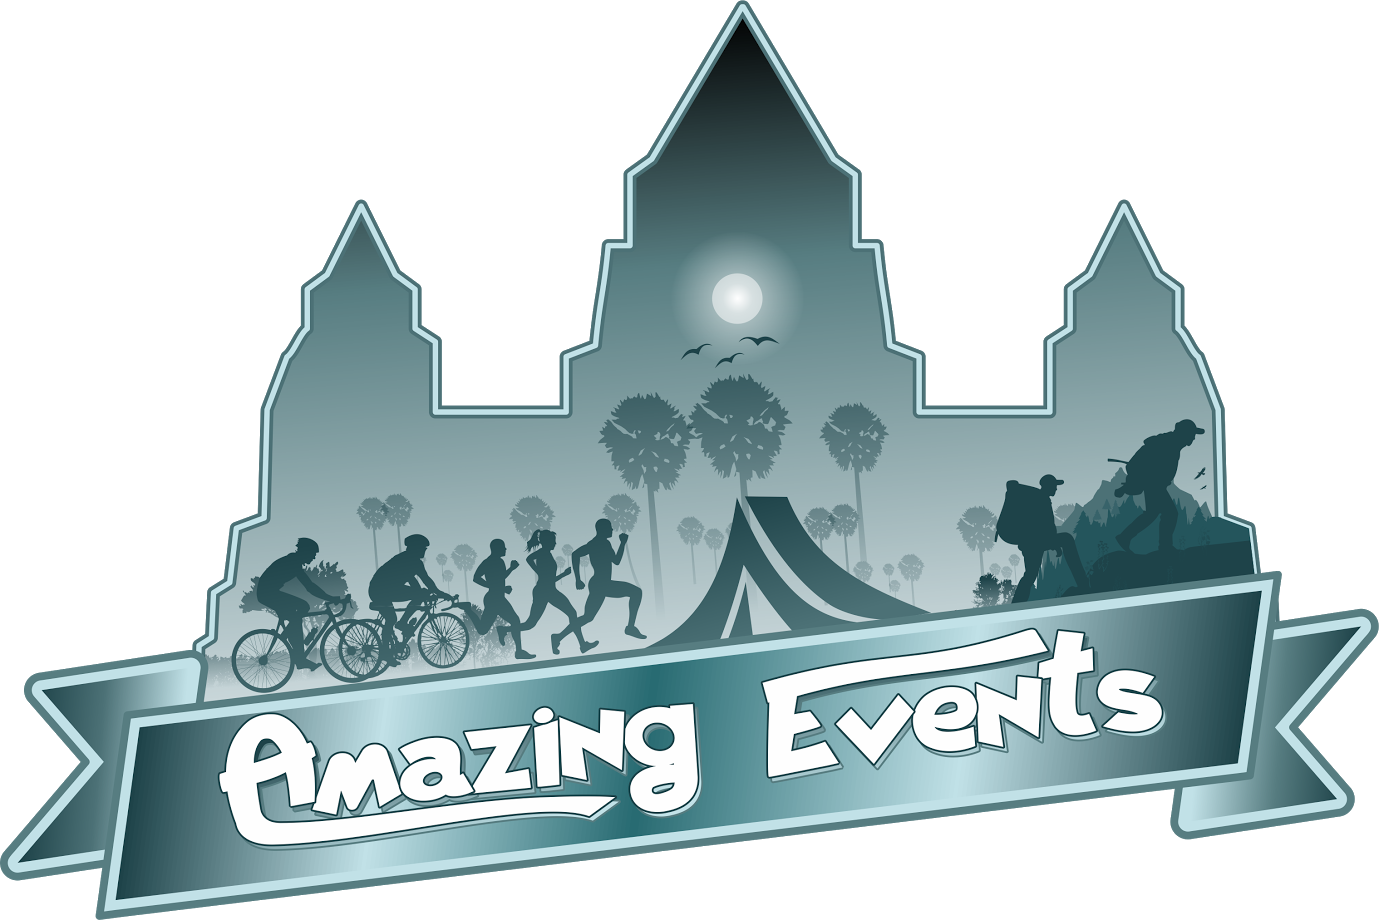 Sports | Cambodia Amazing Events | Cambodia Events | Night Run | Marathon | Fun Run | Angkor Night Run